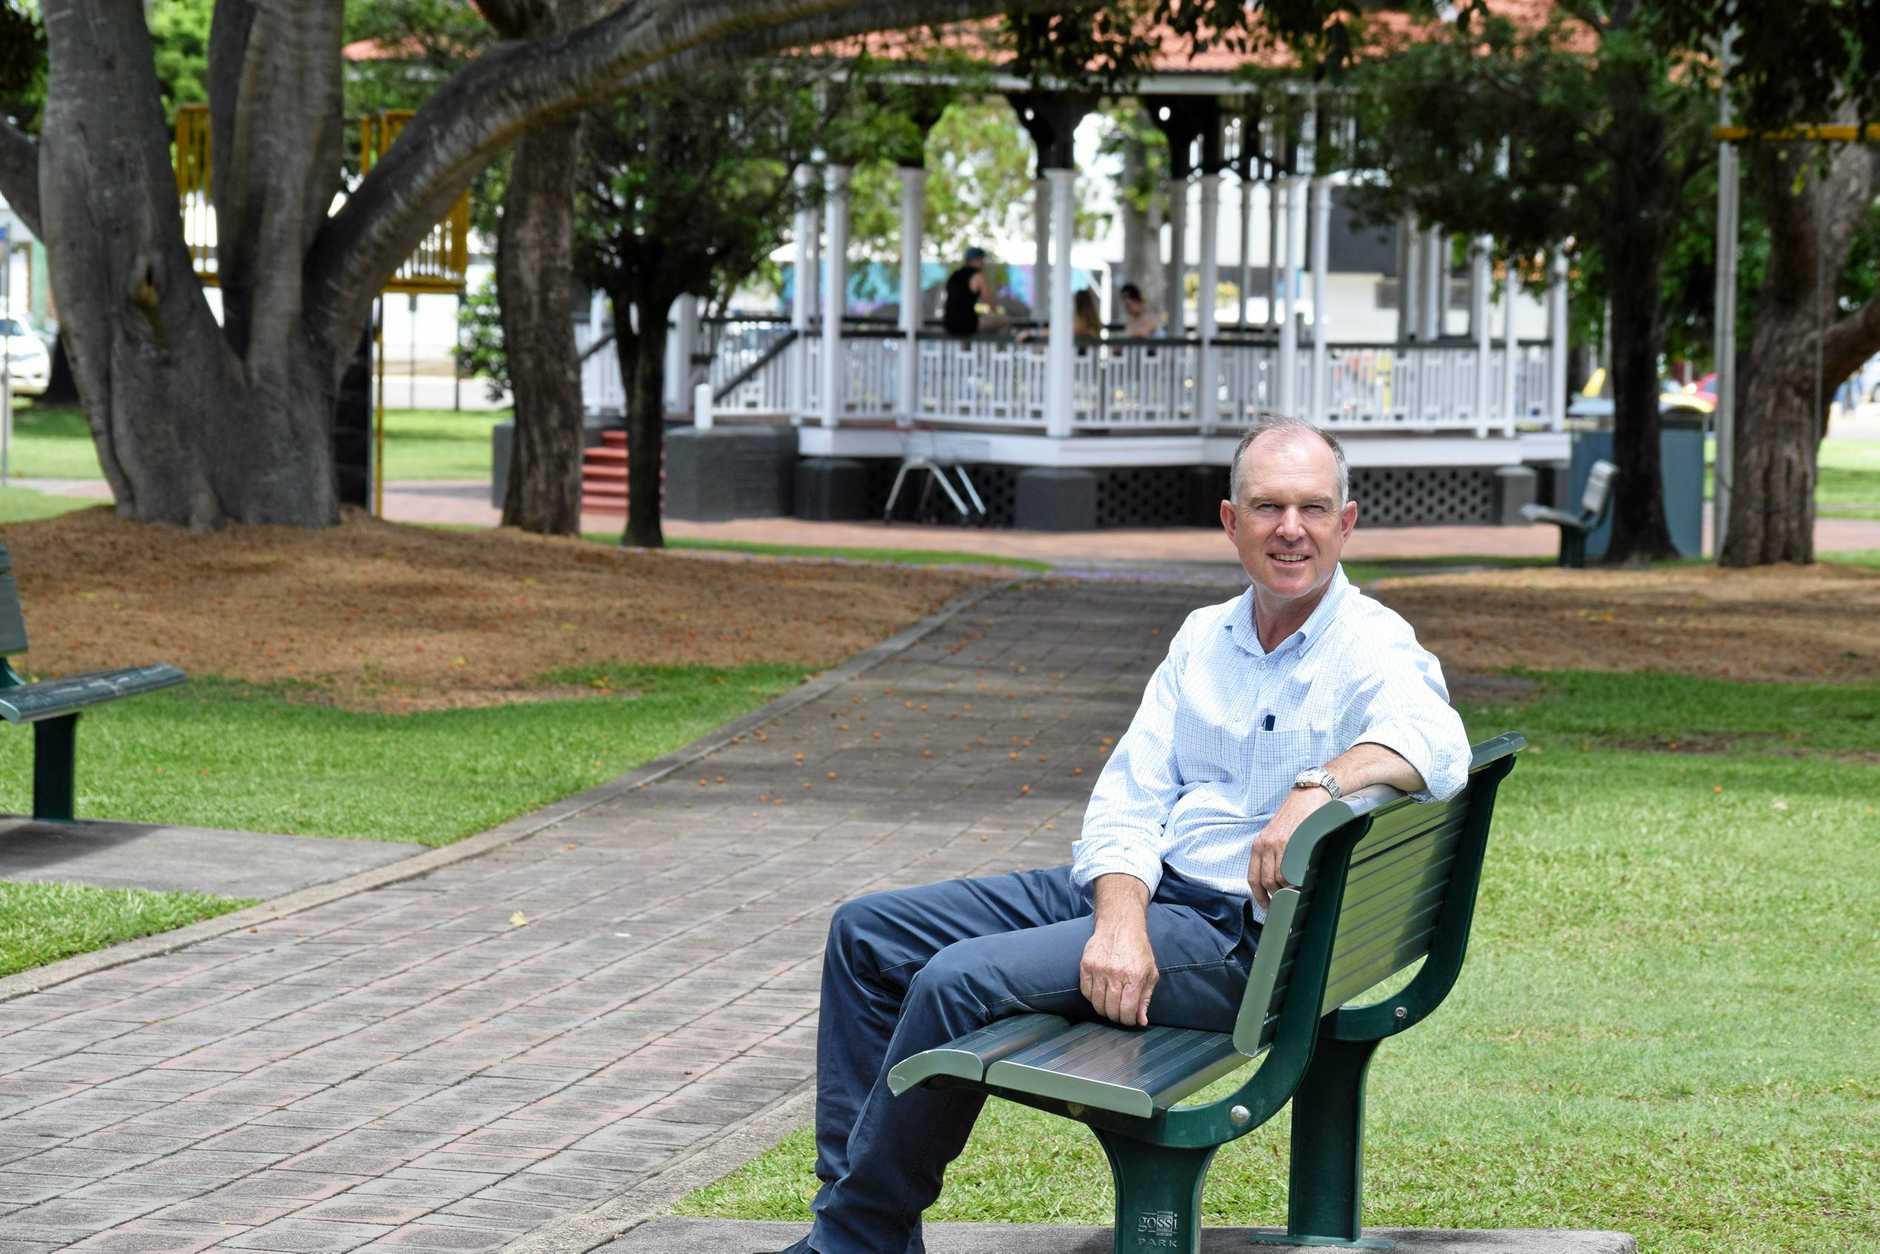 Gympie MP Tony Perrett has been returned for another three years in Parliament.